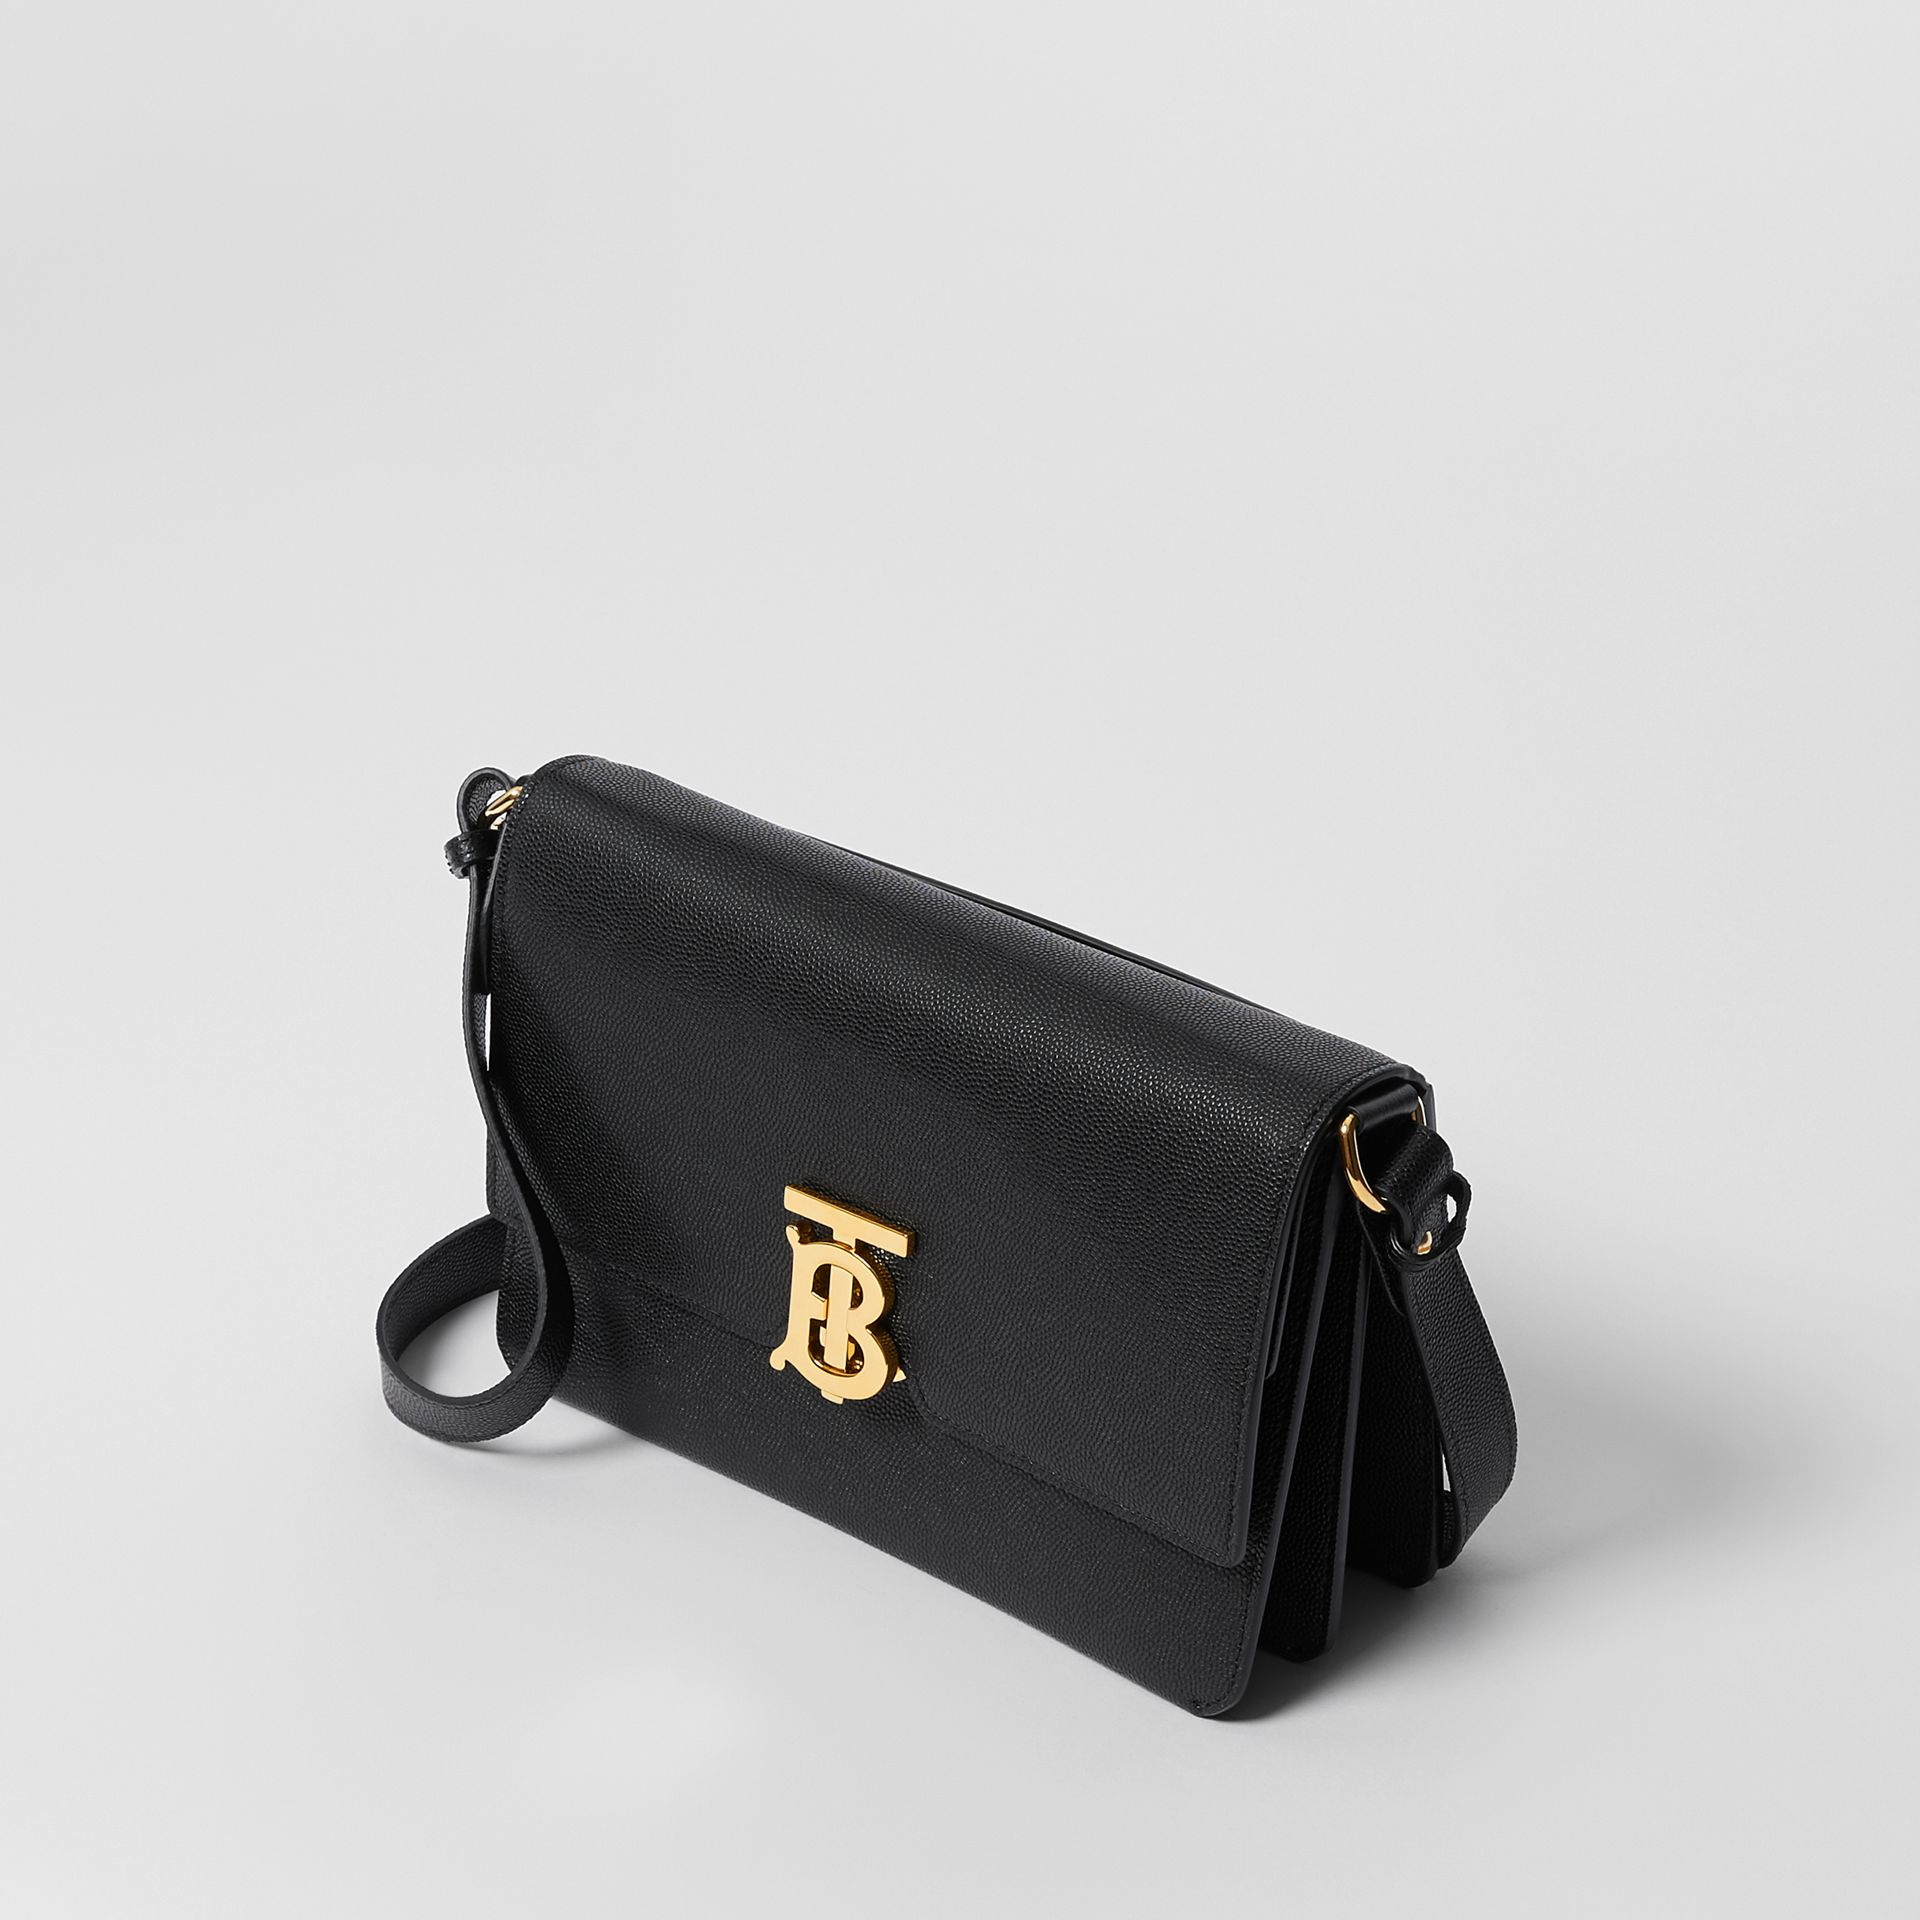 Small Monogram Motif Leather Crossbody Bag in Black - Women | Burberry - gallery image 3